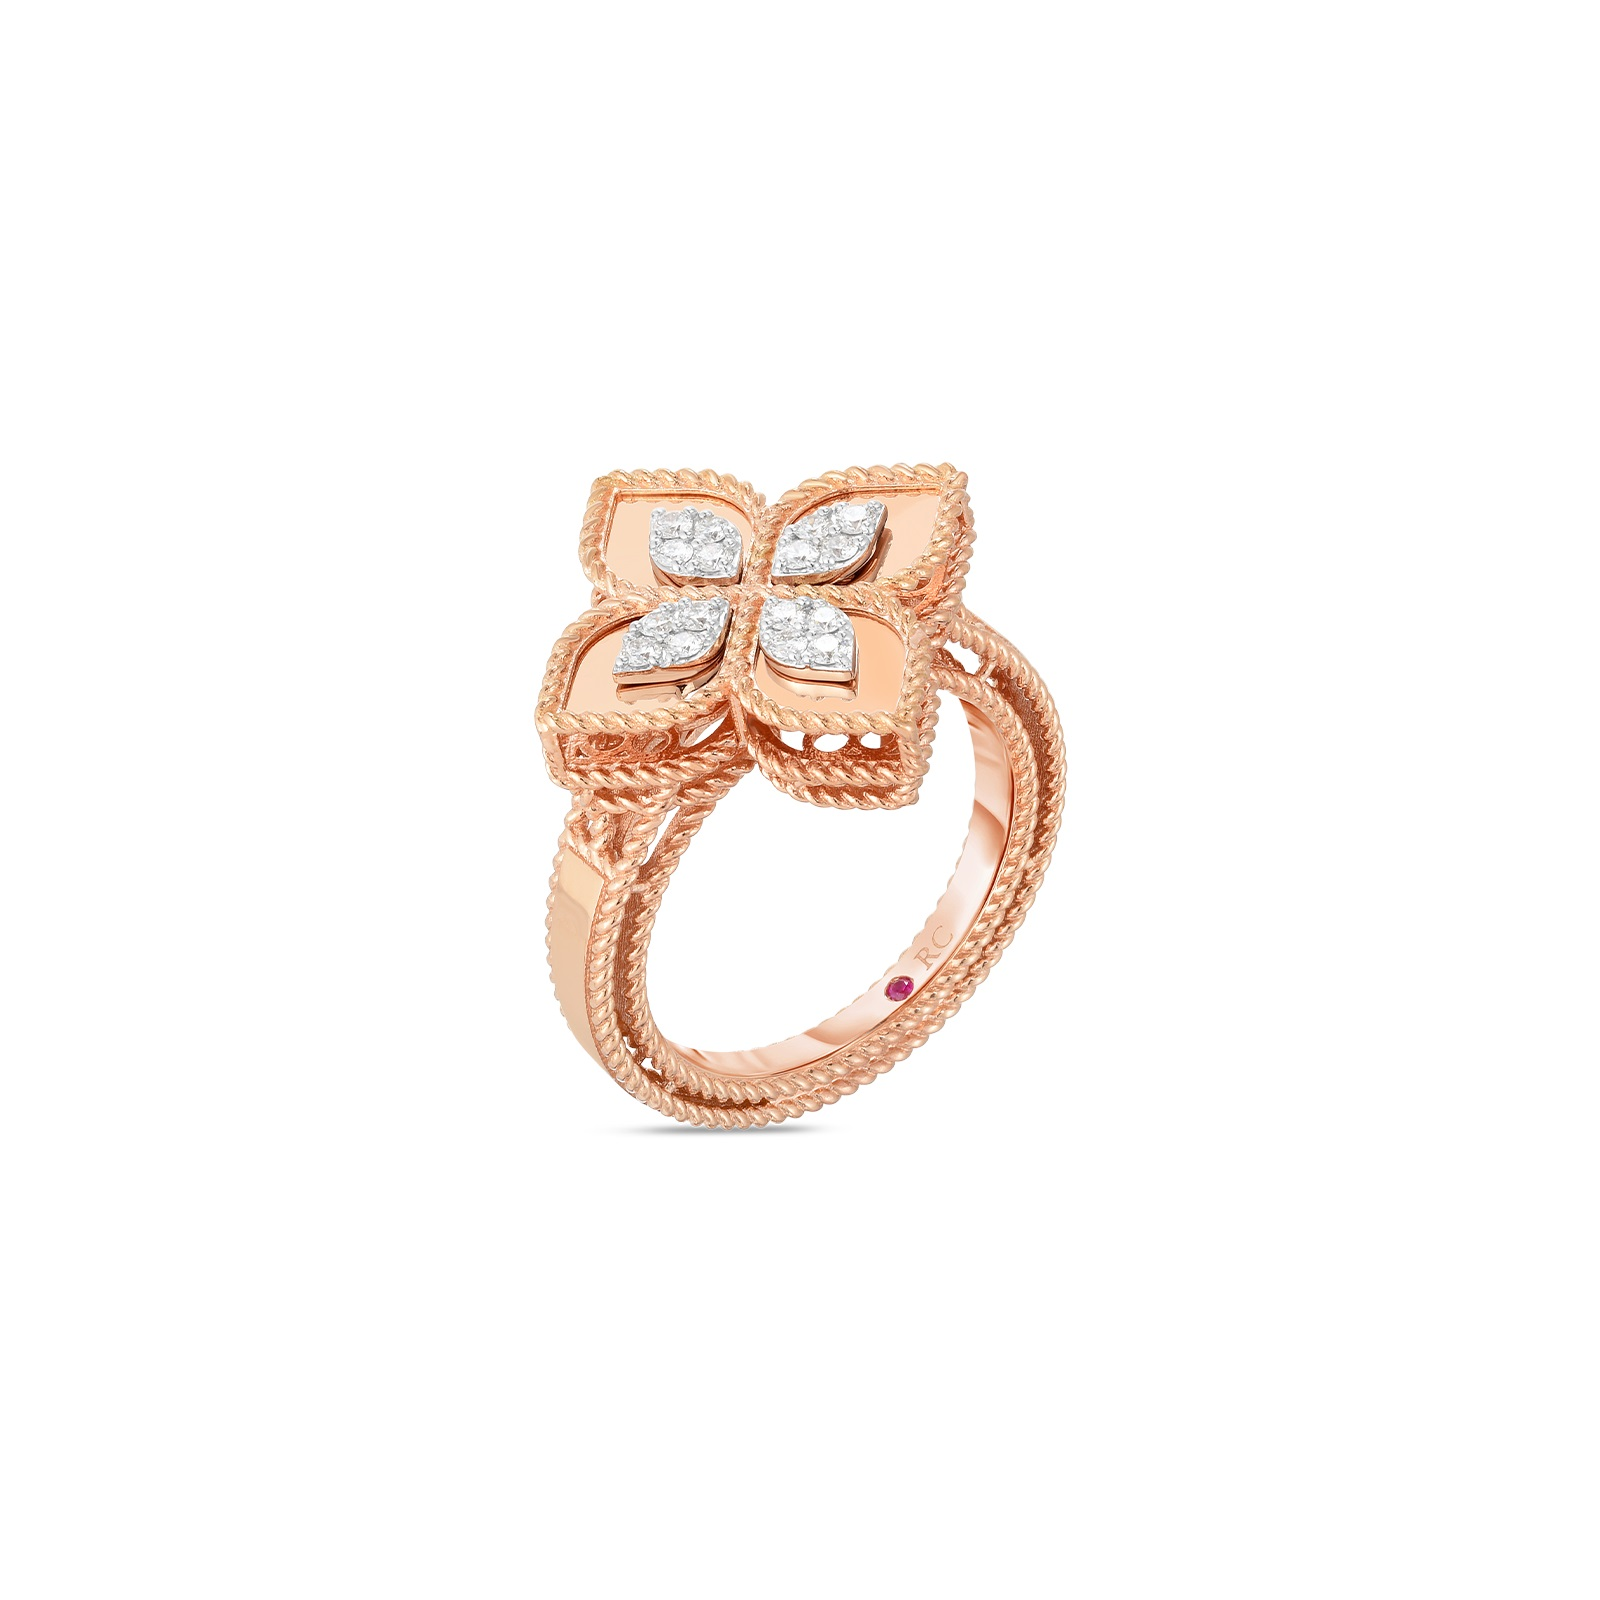 Roberto Coin 18K Rose Gold .17cts  Diamonds Gold Ring with Stones 8882754AH65X